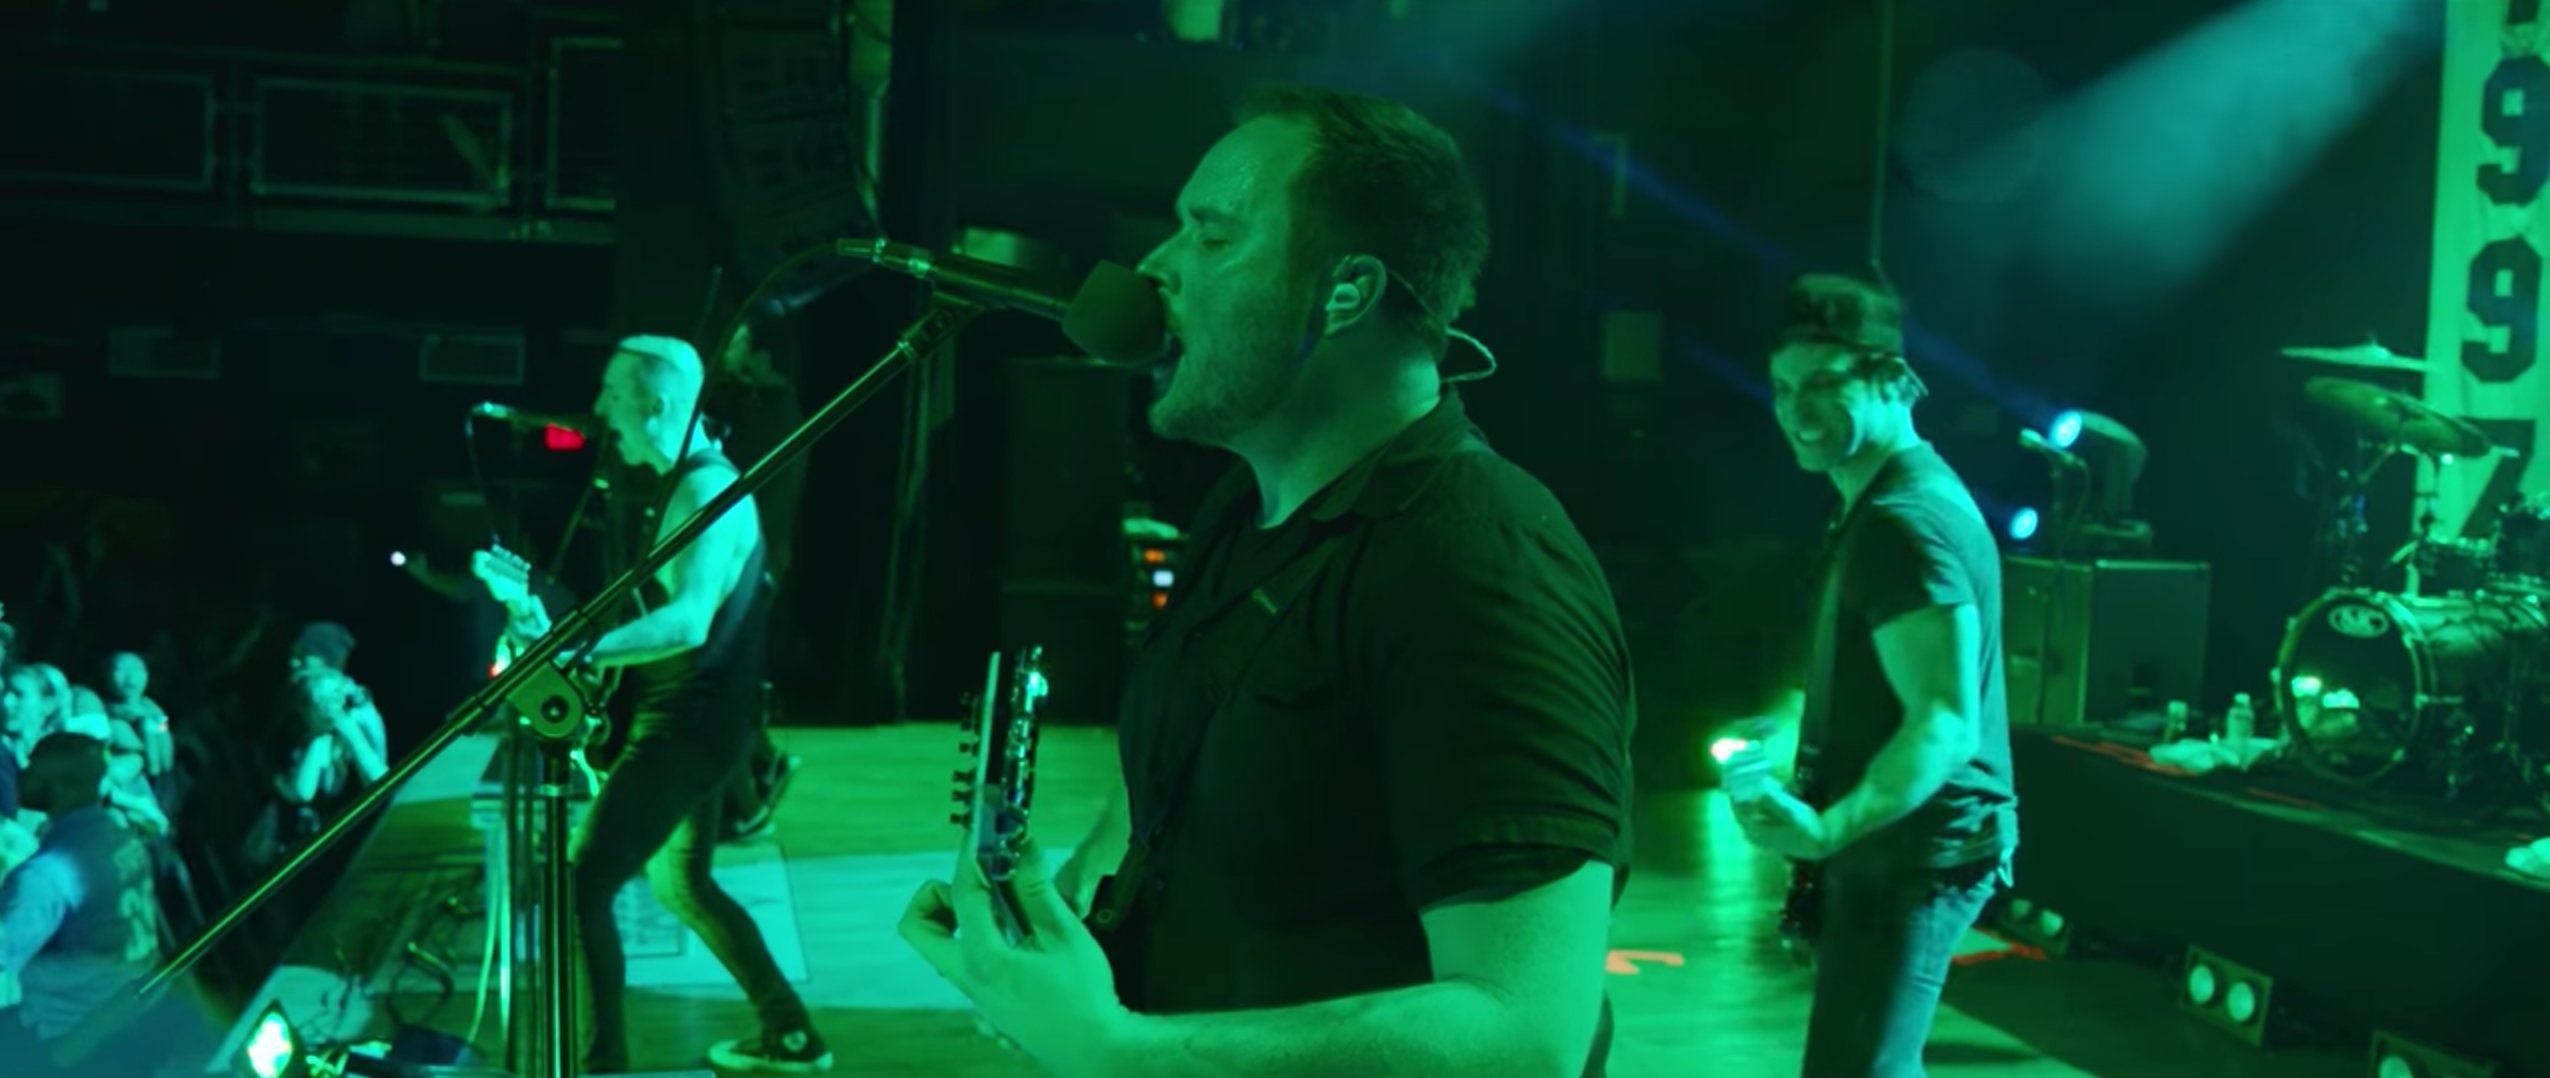 Yellowcard's last music video is going to make you cry